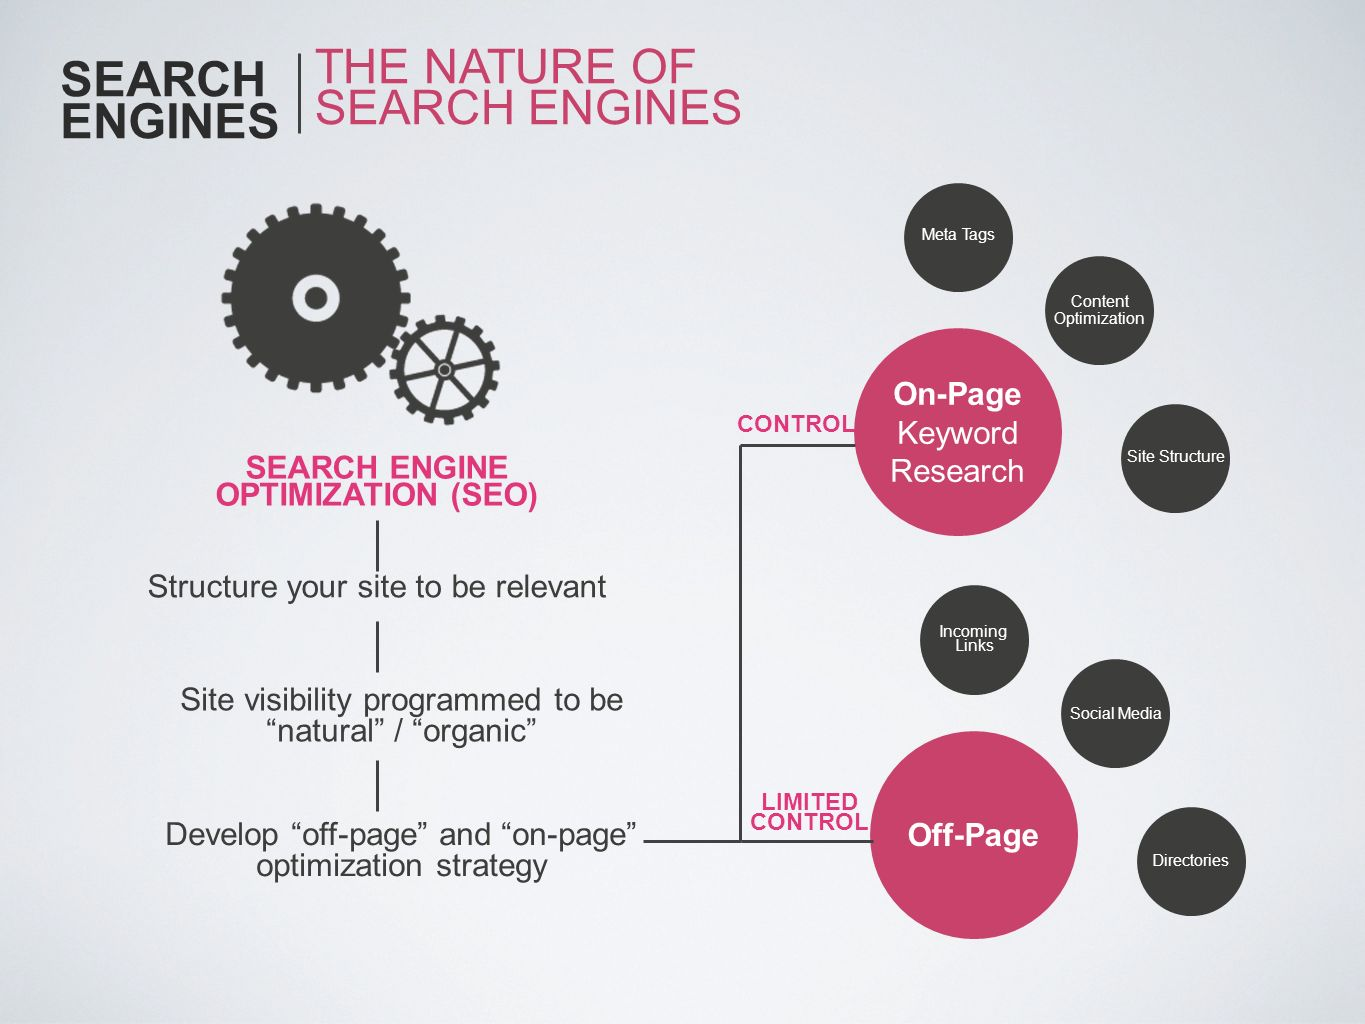 SEARCH ENGINES THE NATURE OF SEARCH ENGINES SEARCH ENGINE OPTIMIZATION (SEO) Structure your site to be relevant Site visibility programmed to be natur